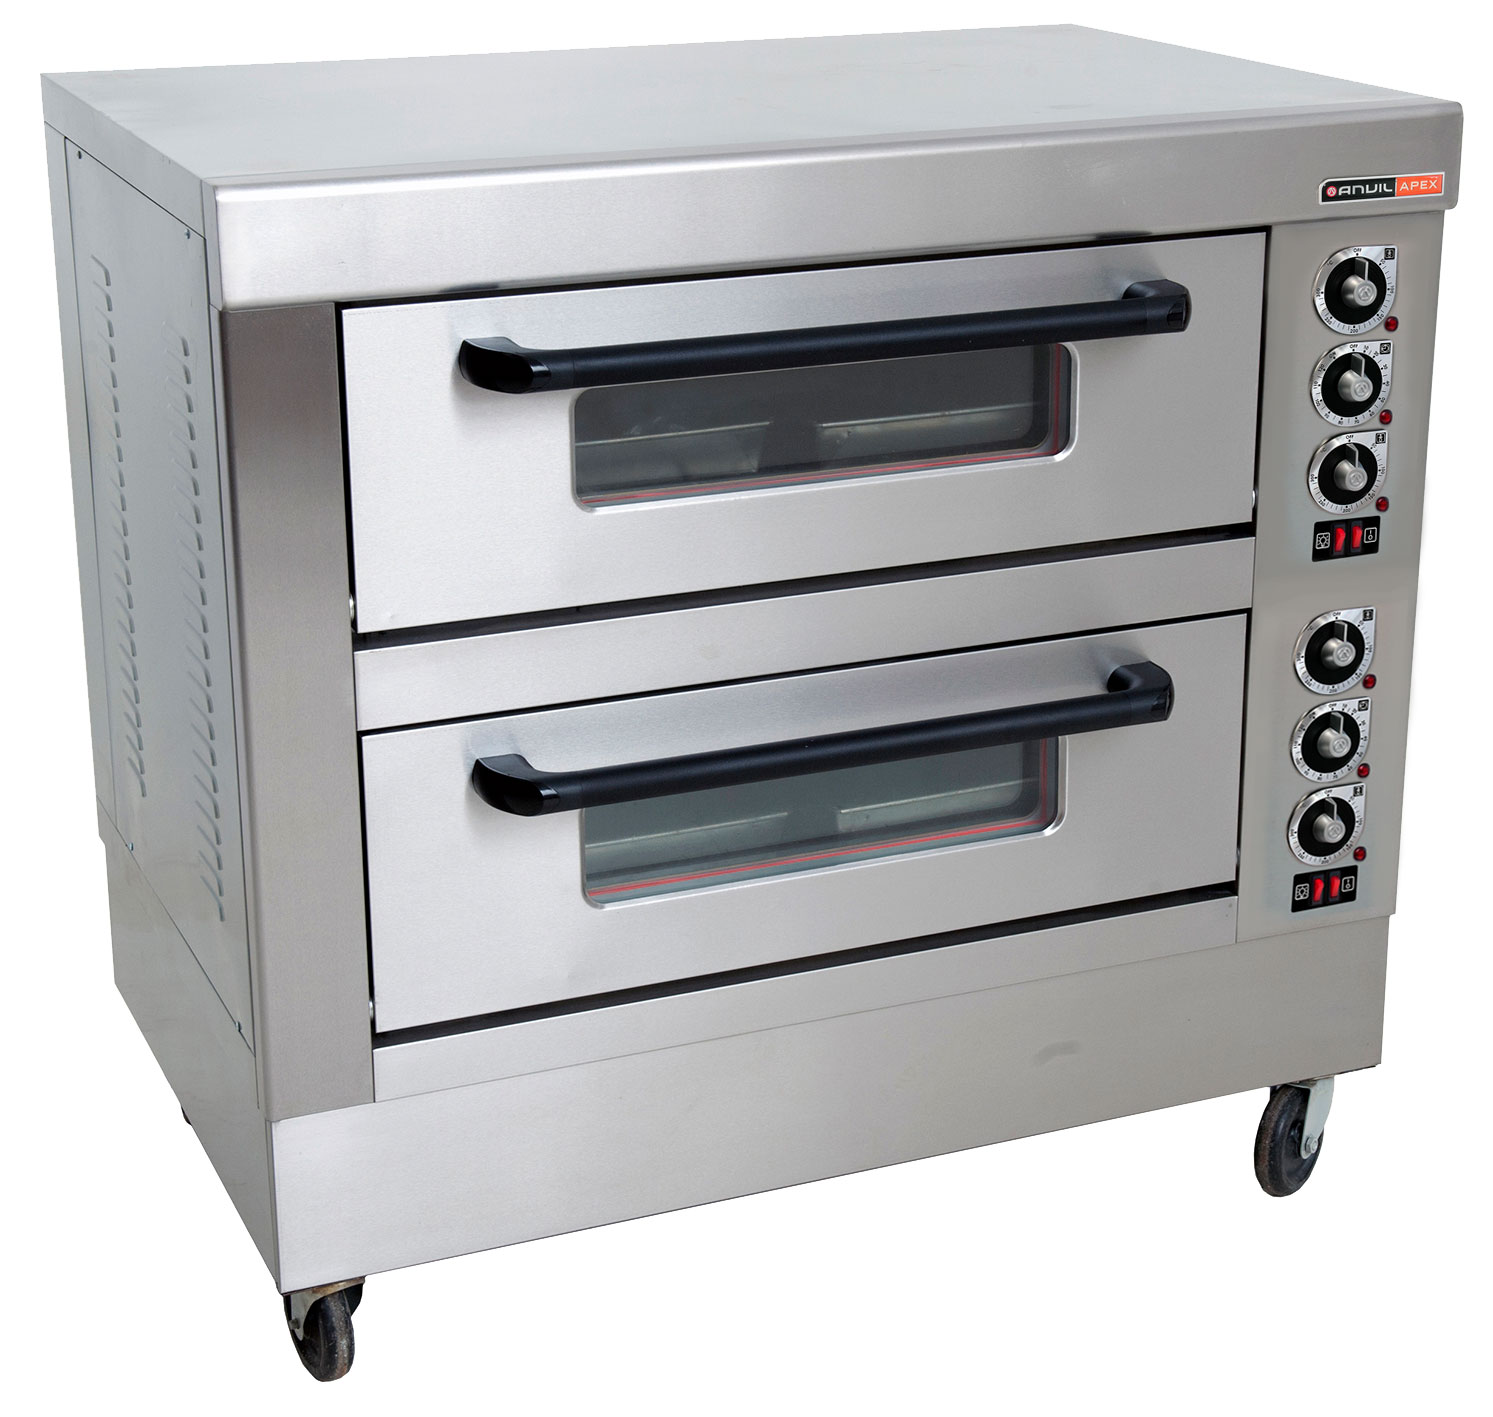 DECK OVEN ANVIL - 4 TRAY - DOUBLE DECK